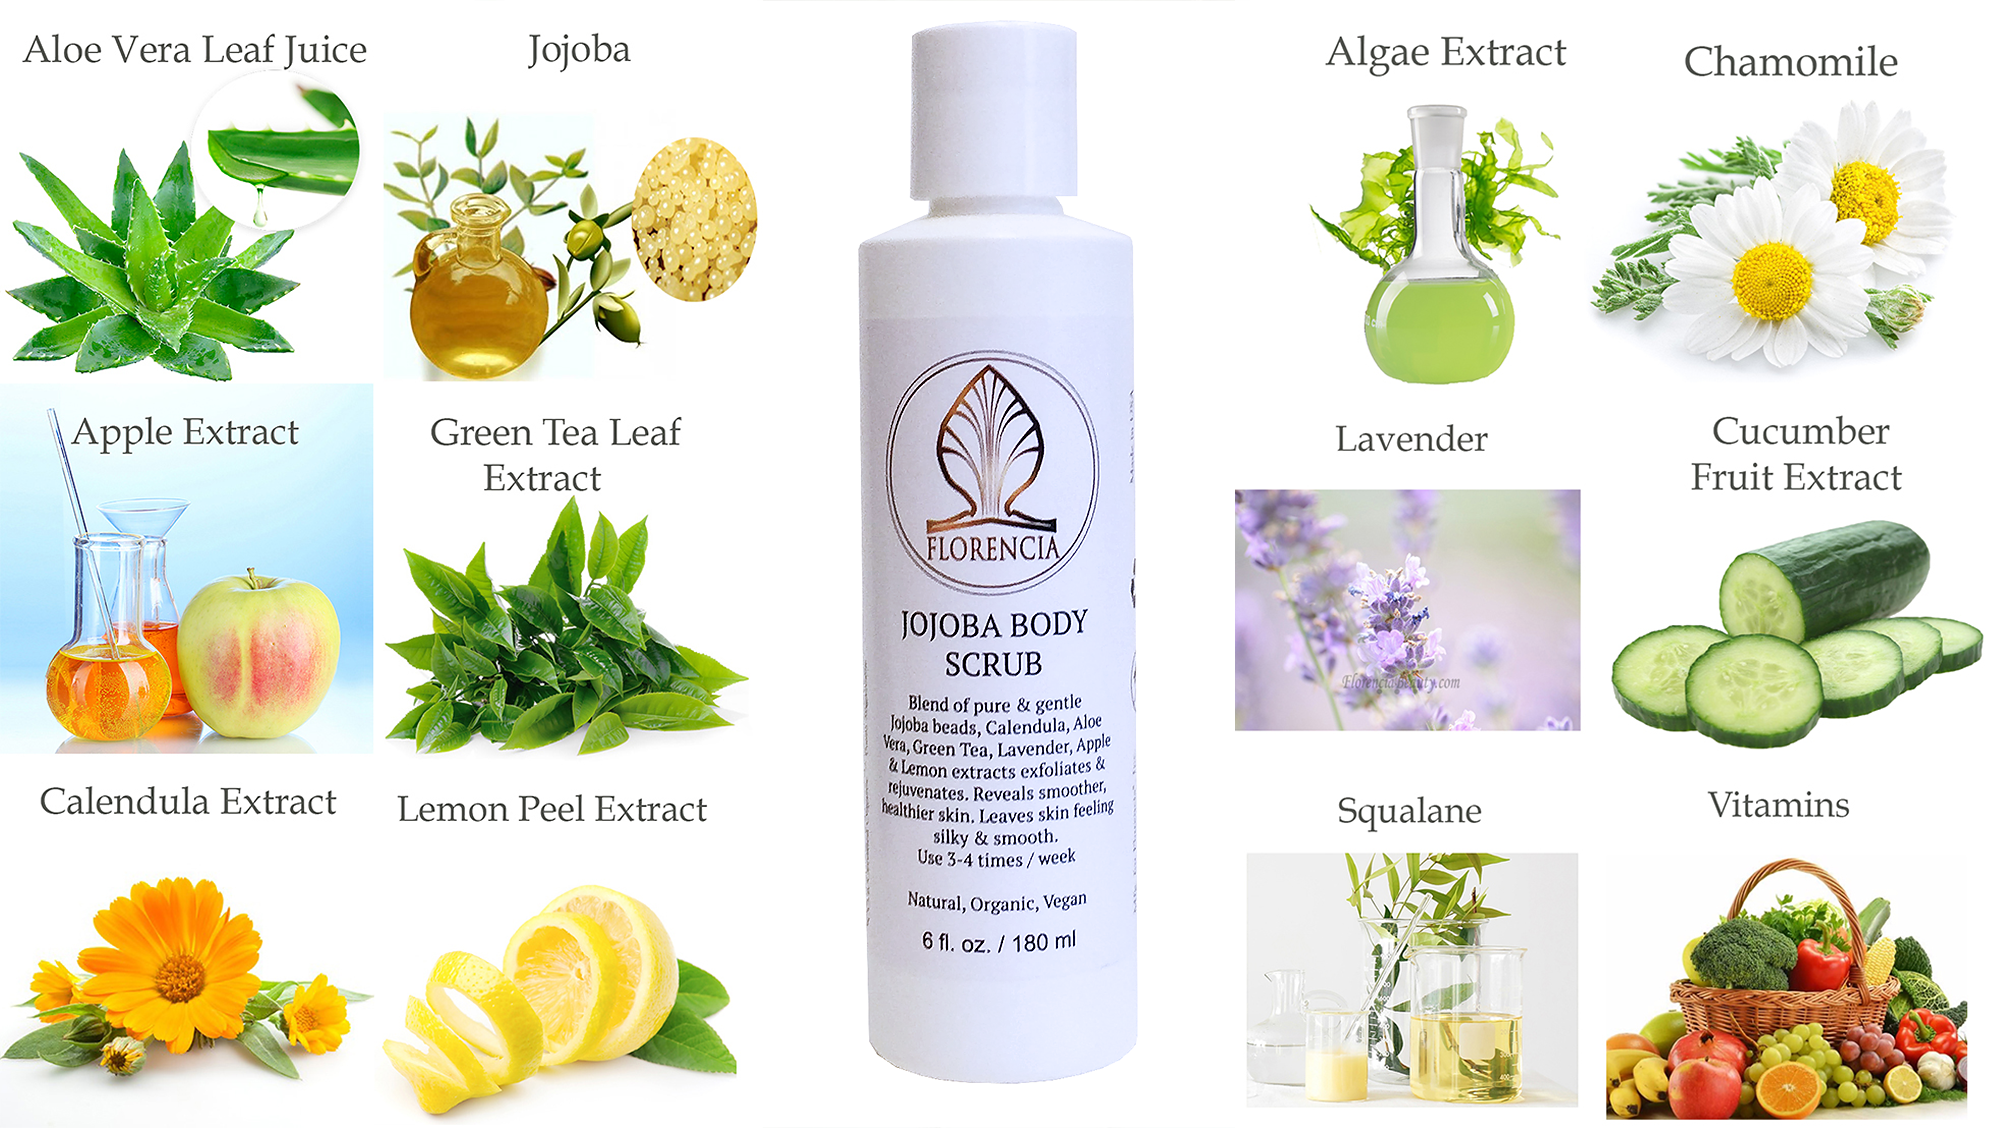 Jojoba Body Scrub bottle and images of ingredients such as lemon peel extract, jojoba, algae extract, lavender and more.